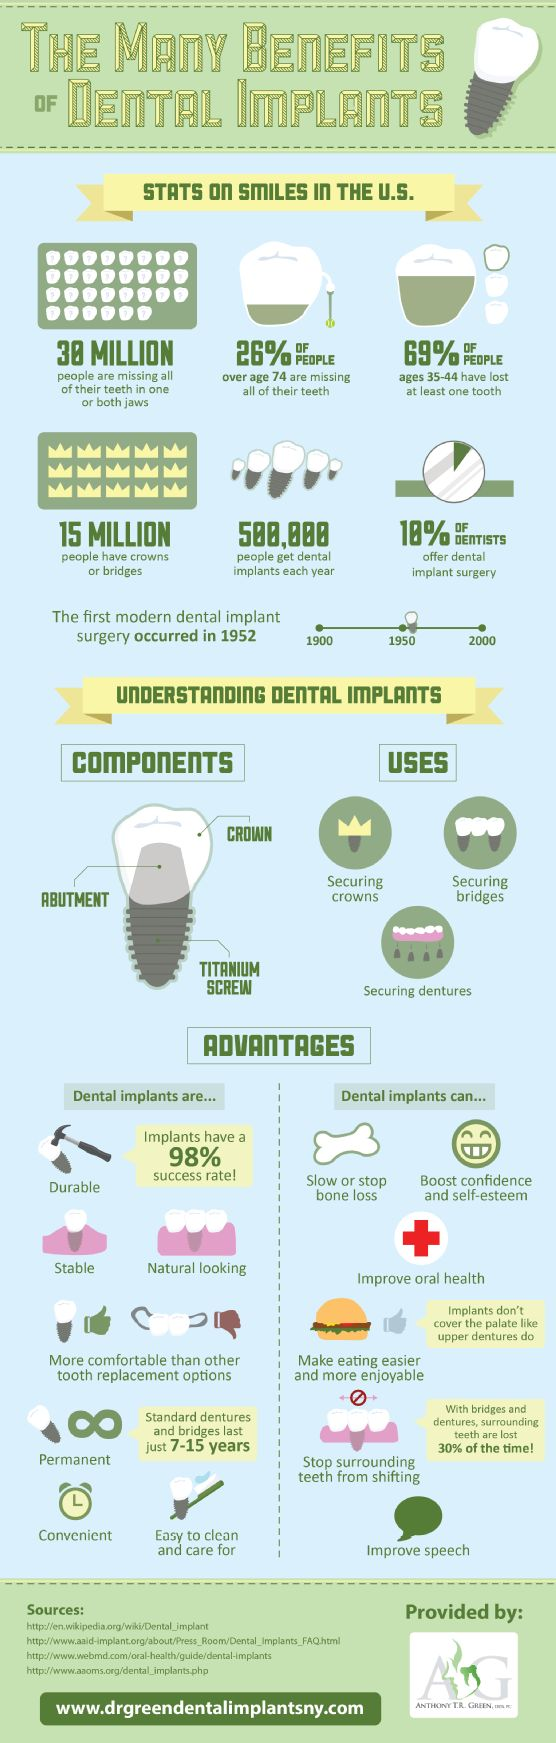 Smiles don't just affect appearance—they also affect health. That is why it is important to find the right solution for missing teeth, like dental implants. View this oral surgery infographic to learn more.